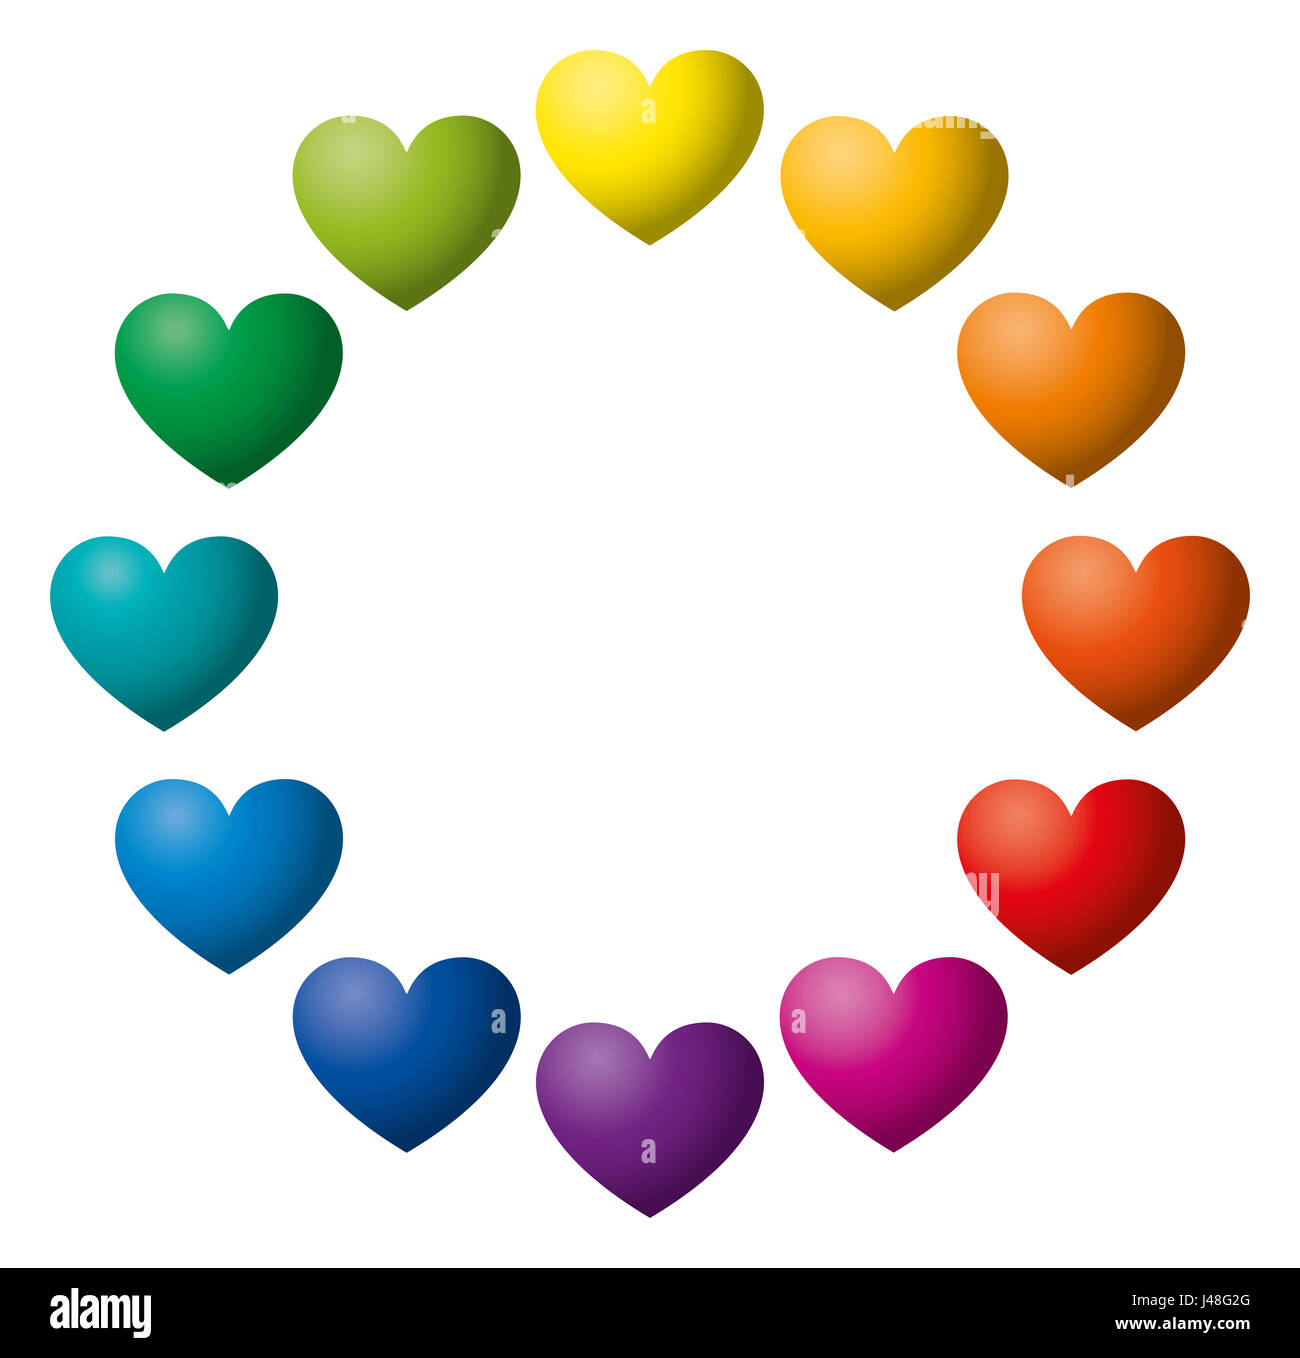 Twelve Rainbow Color Hearts Arranged In A Circle Heart Symbols In